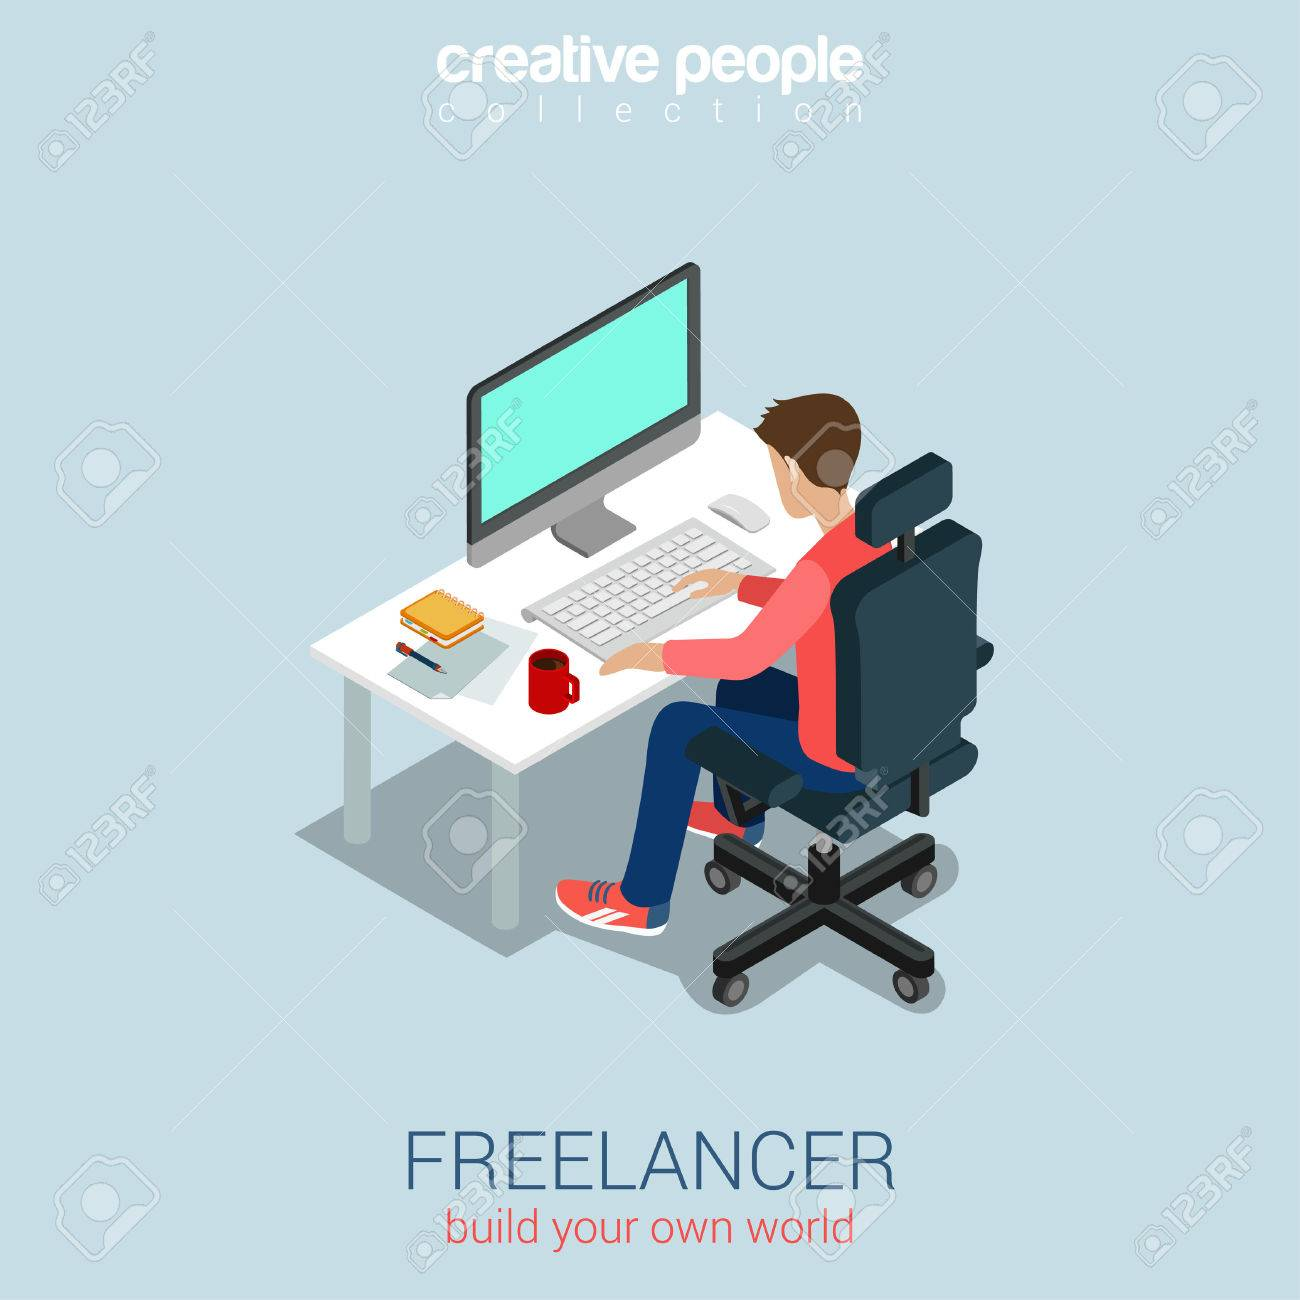 Freelancer at work flat 3d web isometric infographic concept vector. Build your own world creative people collection. Stock Vector - 48578751